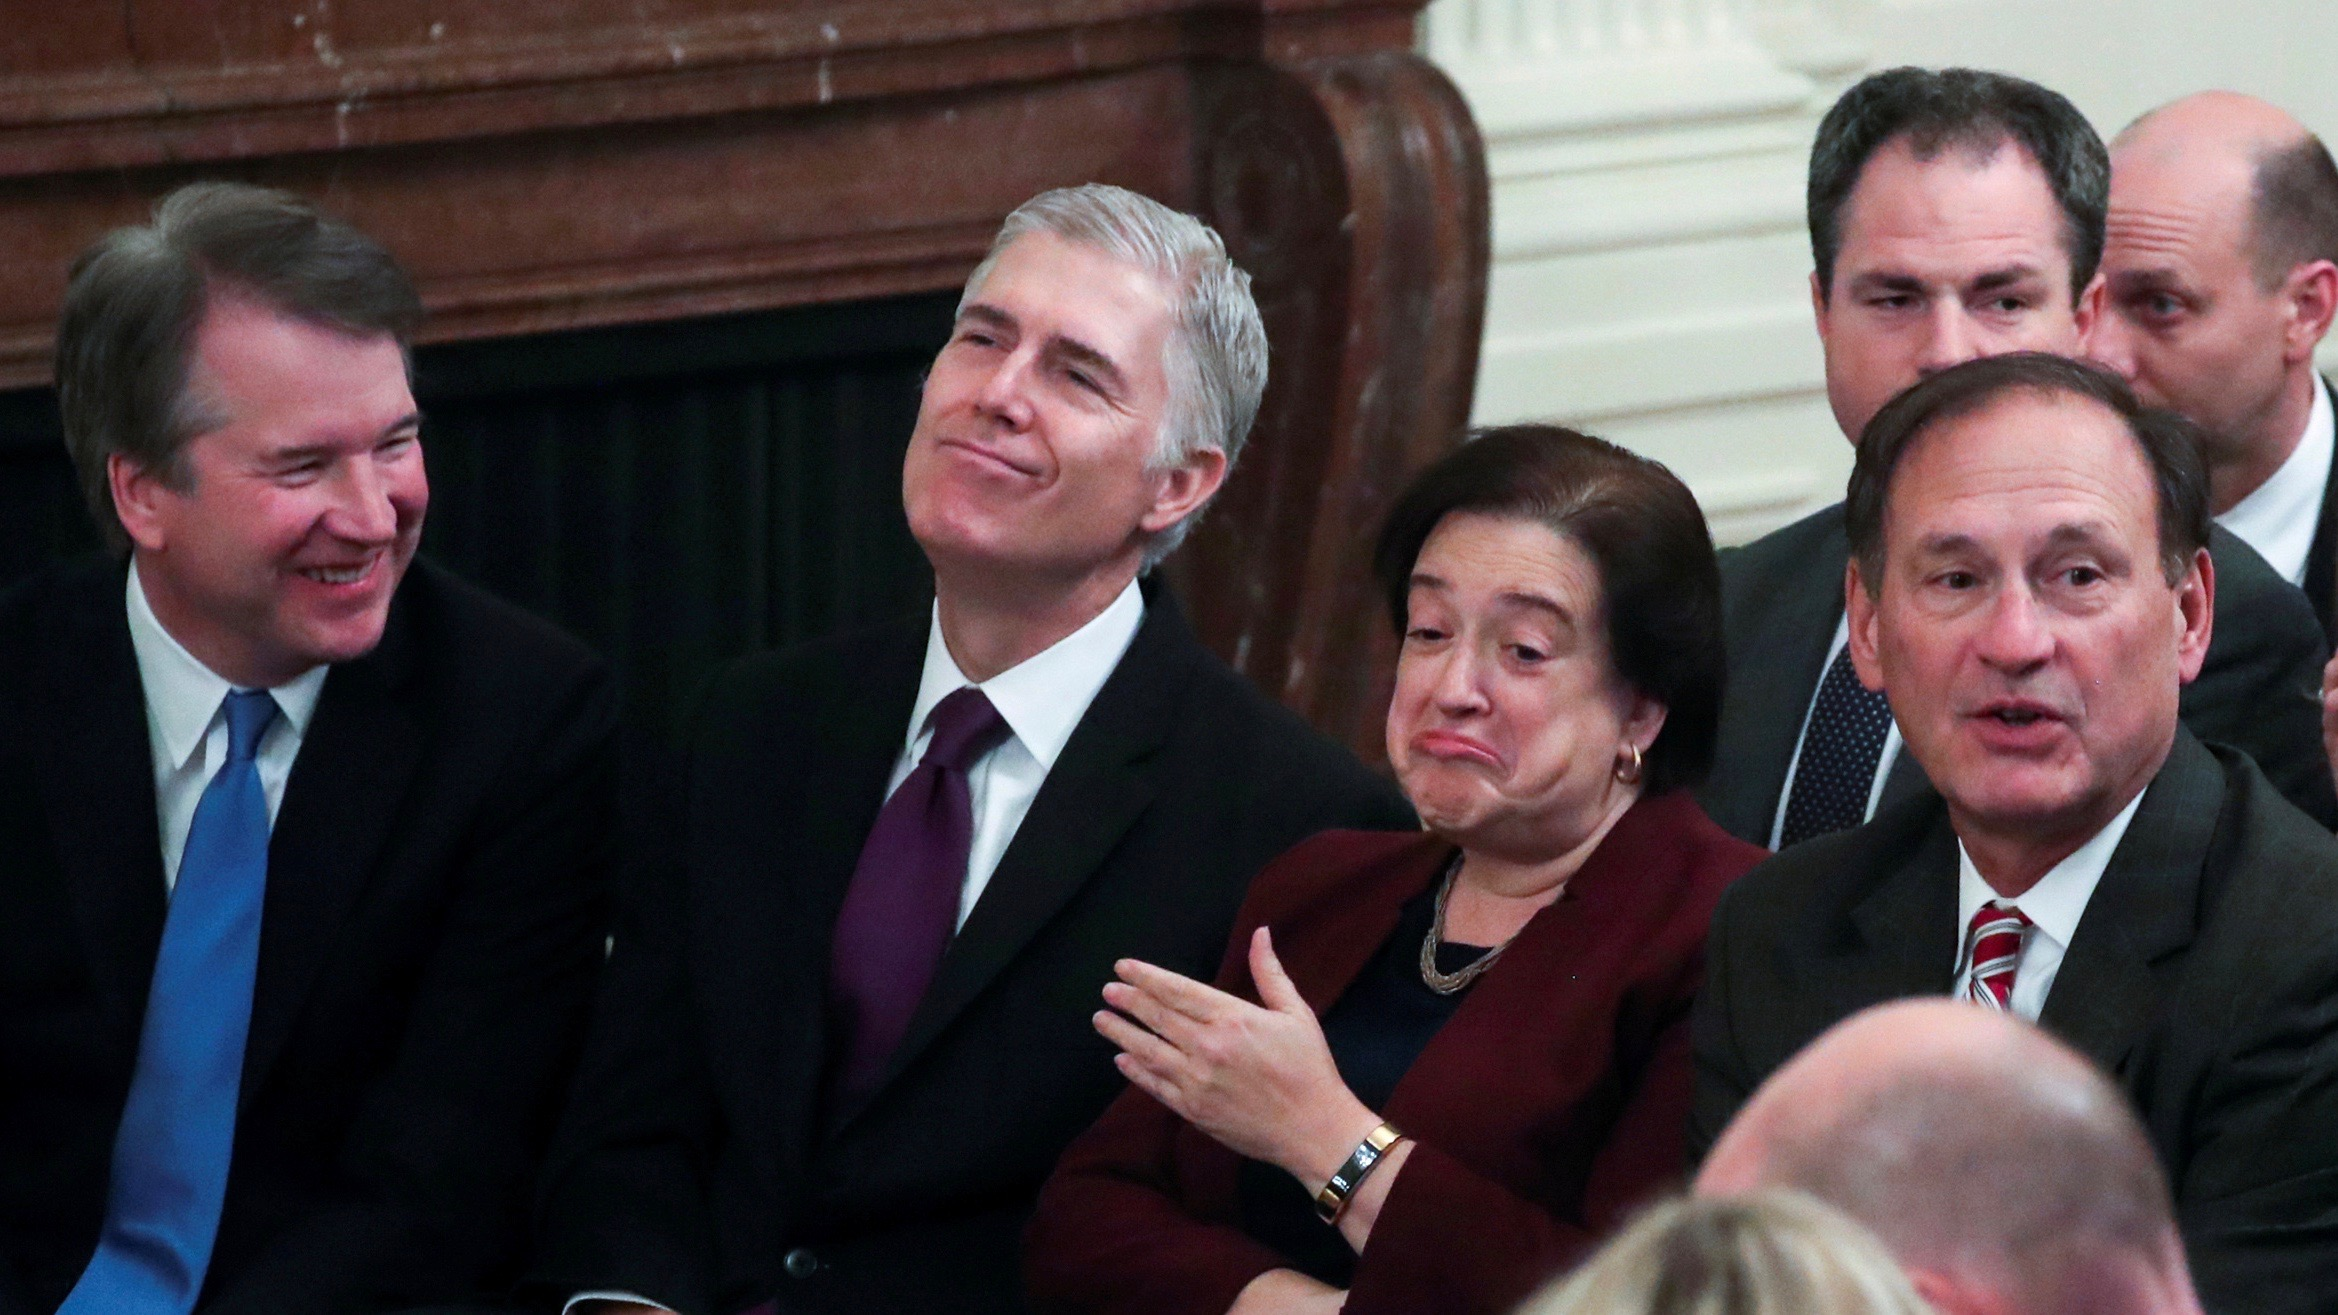 Kavanaugh, Gorsuch, Kagan, and Alito.